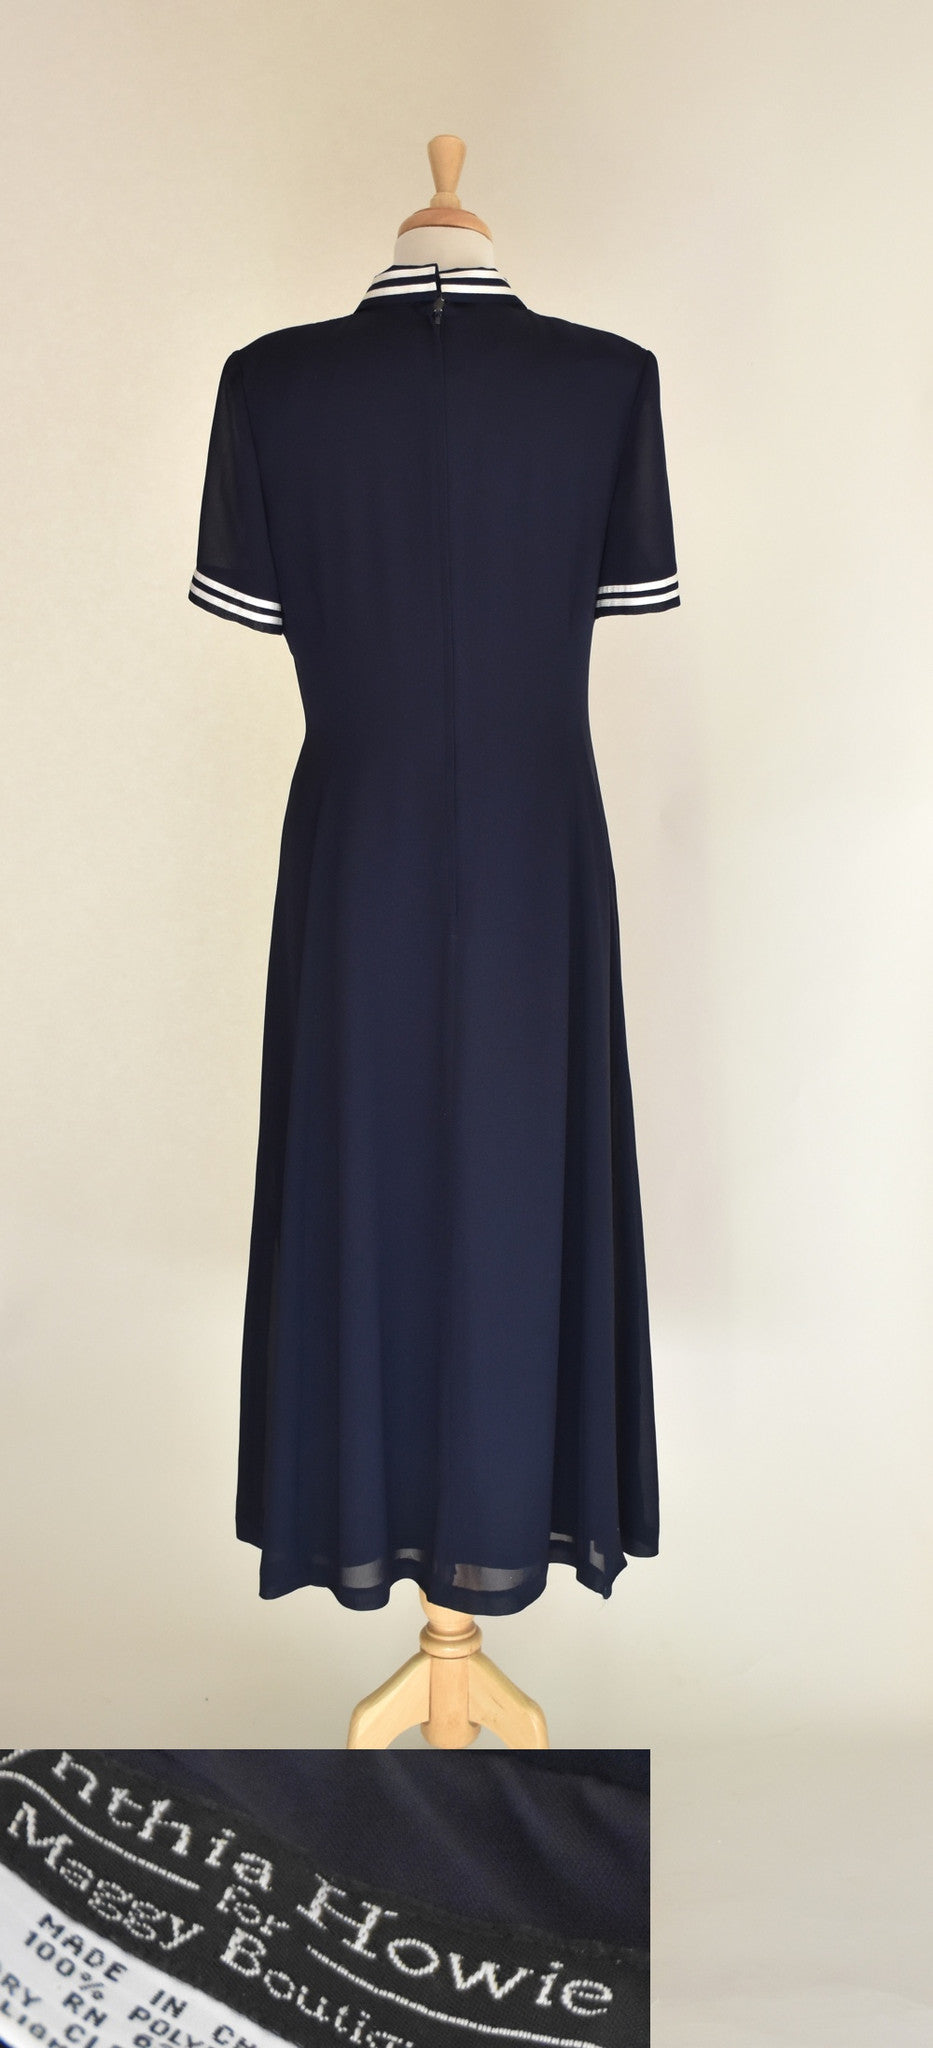 90s nautical dress